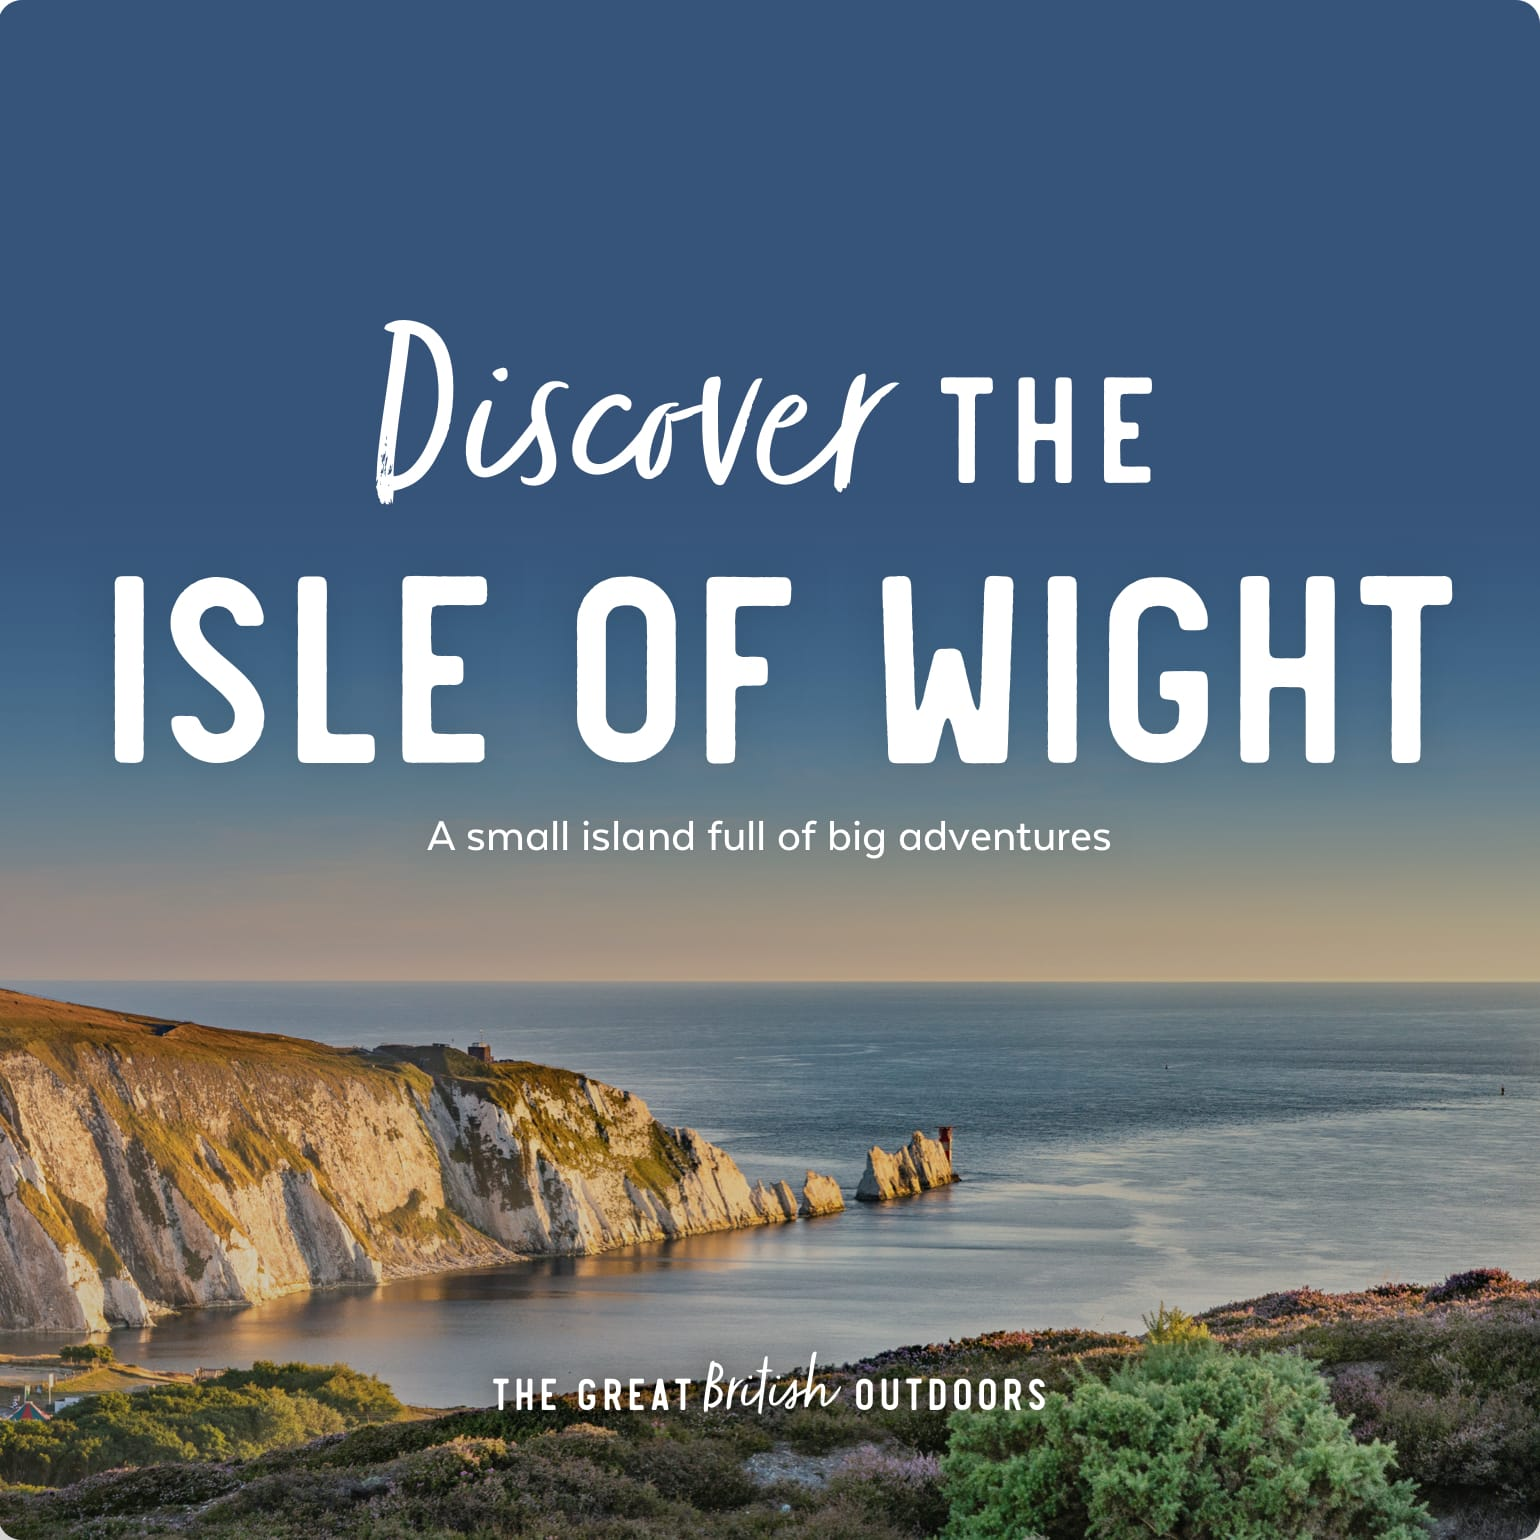 Discover the Isle of Wight